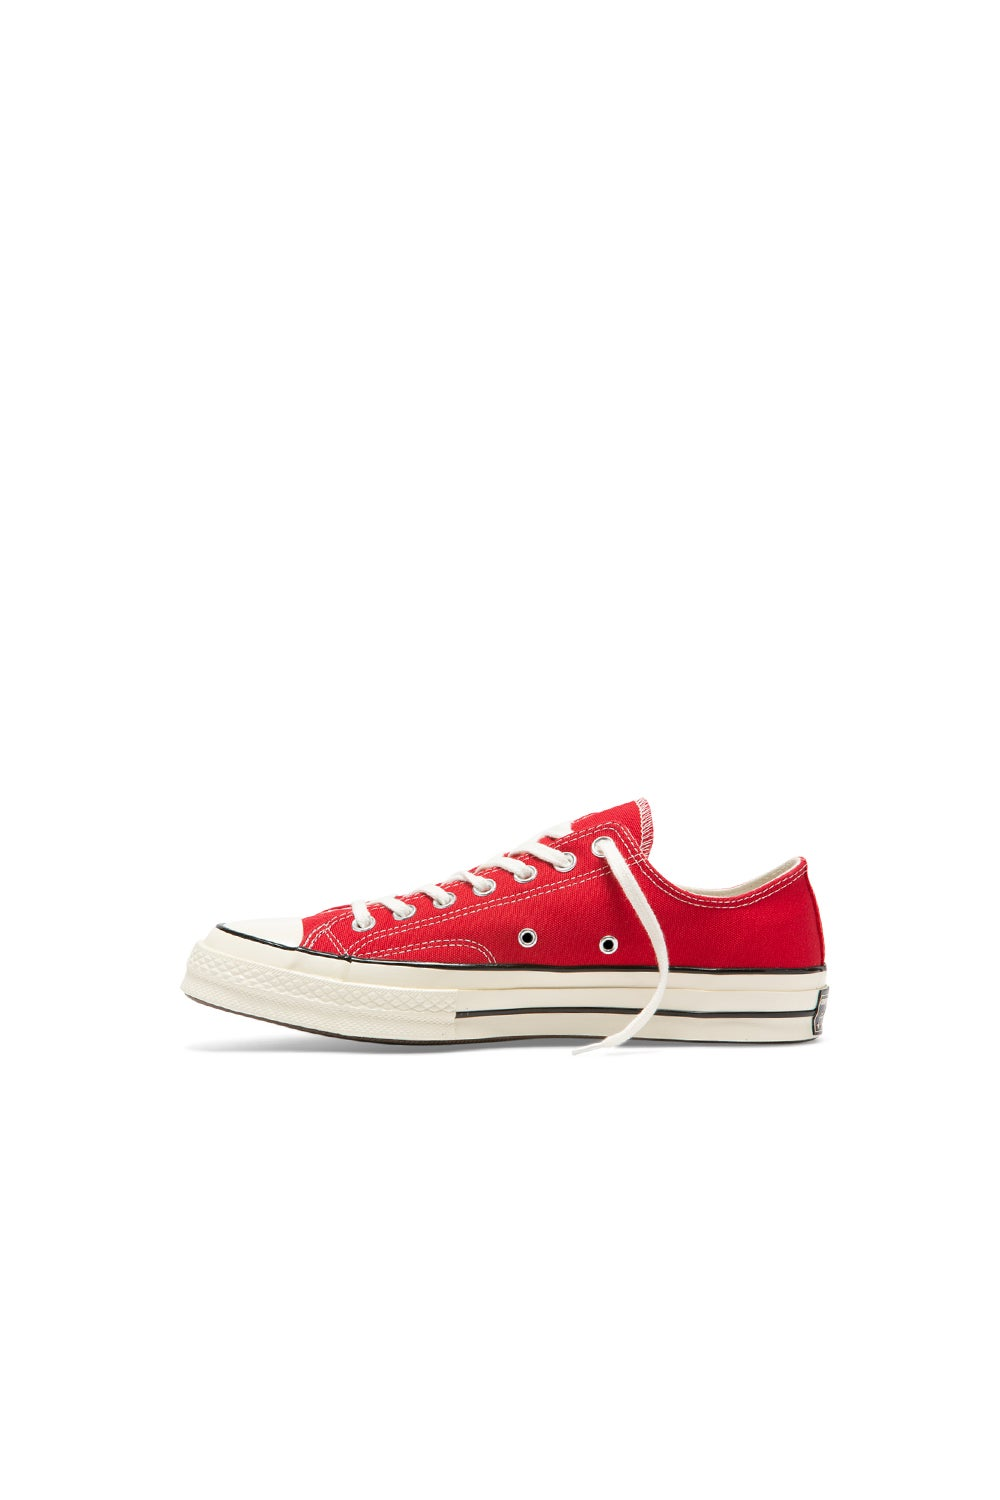 Converse Chuck Taylor All Star 70 Always On Low Enamel Red